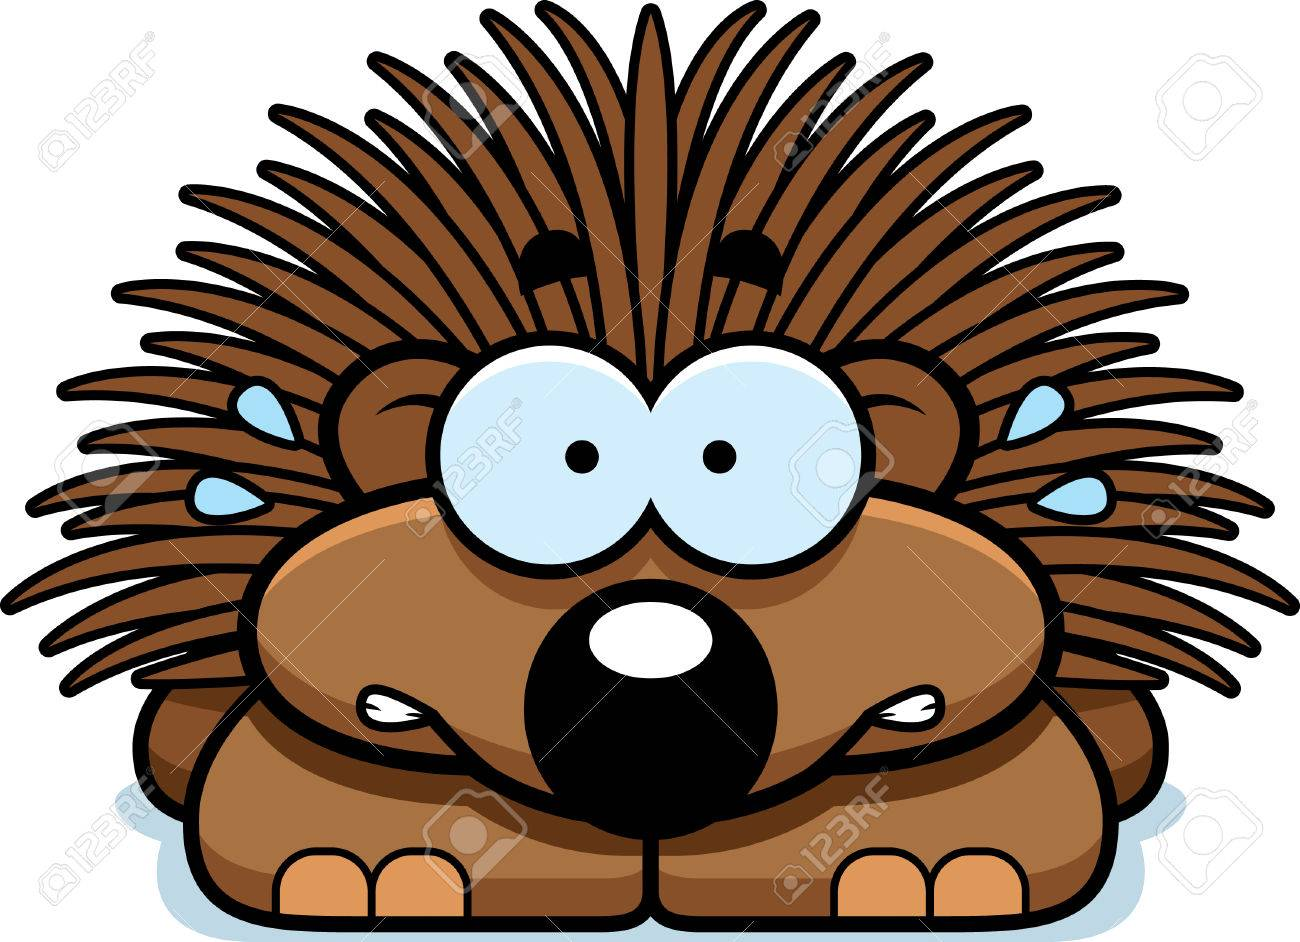 hight resolution of a cartoon illustration of a little porcupine looking nervous stock vector 42751061